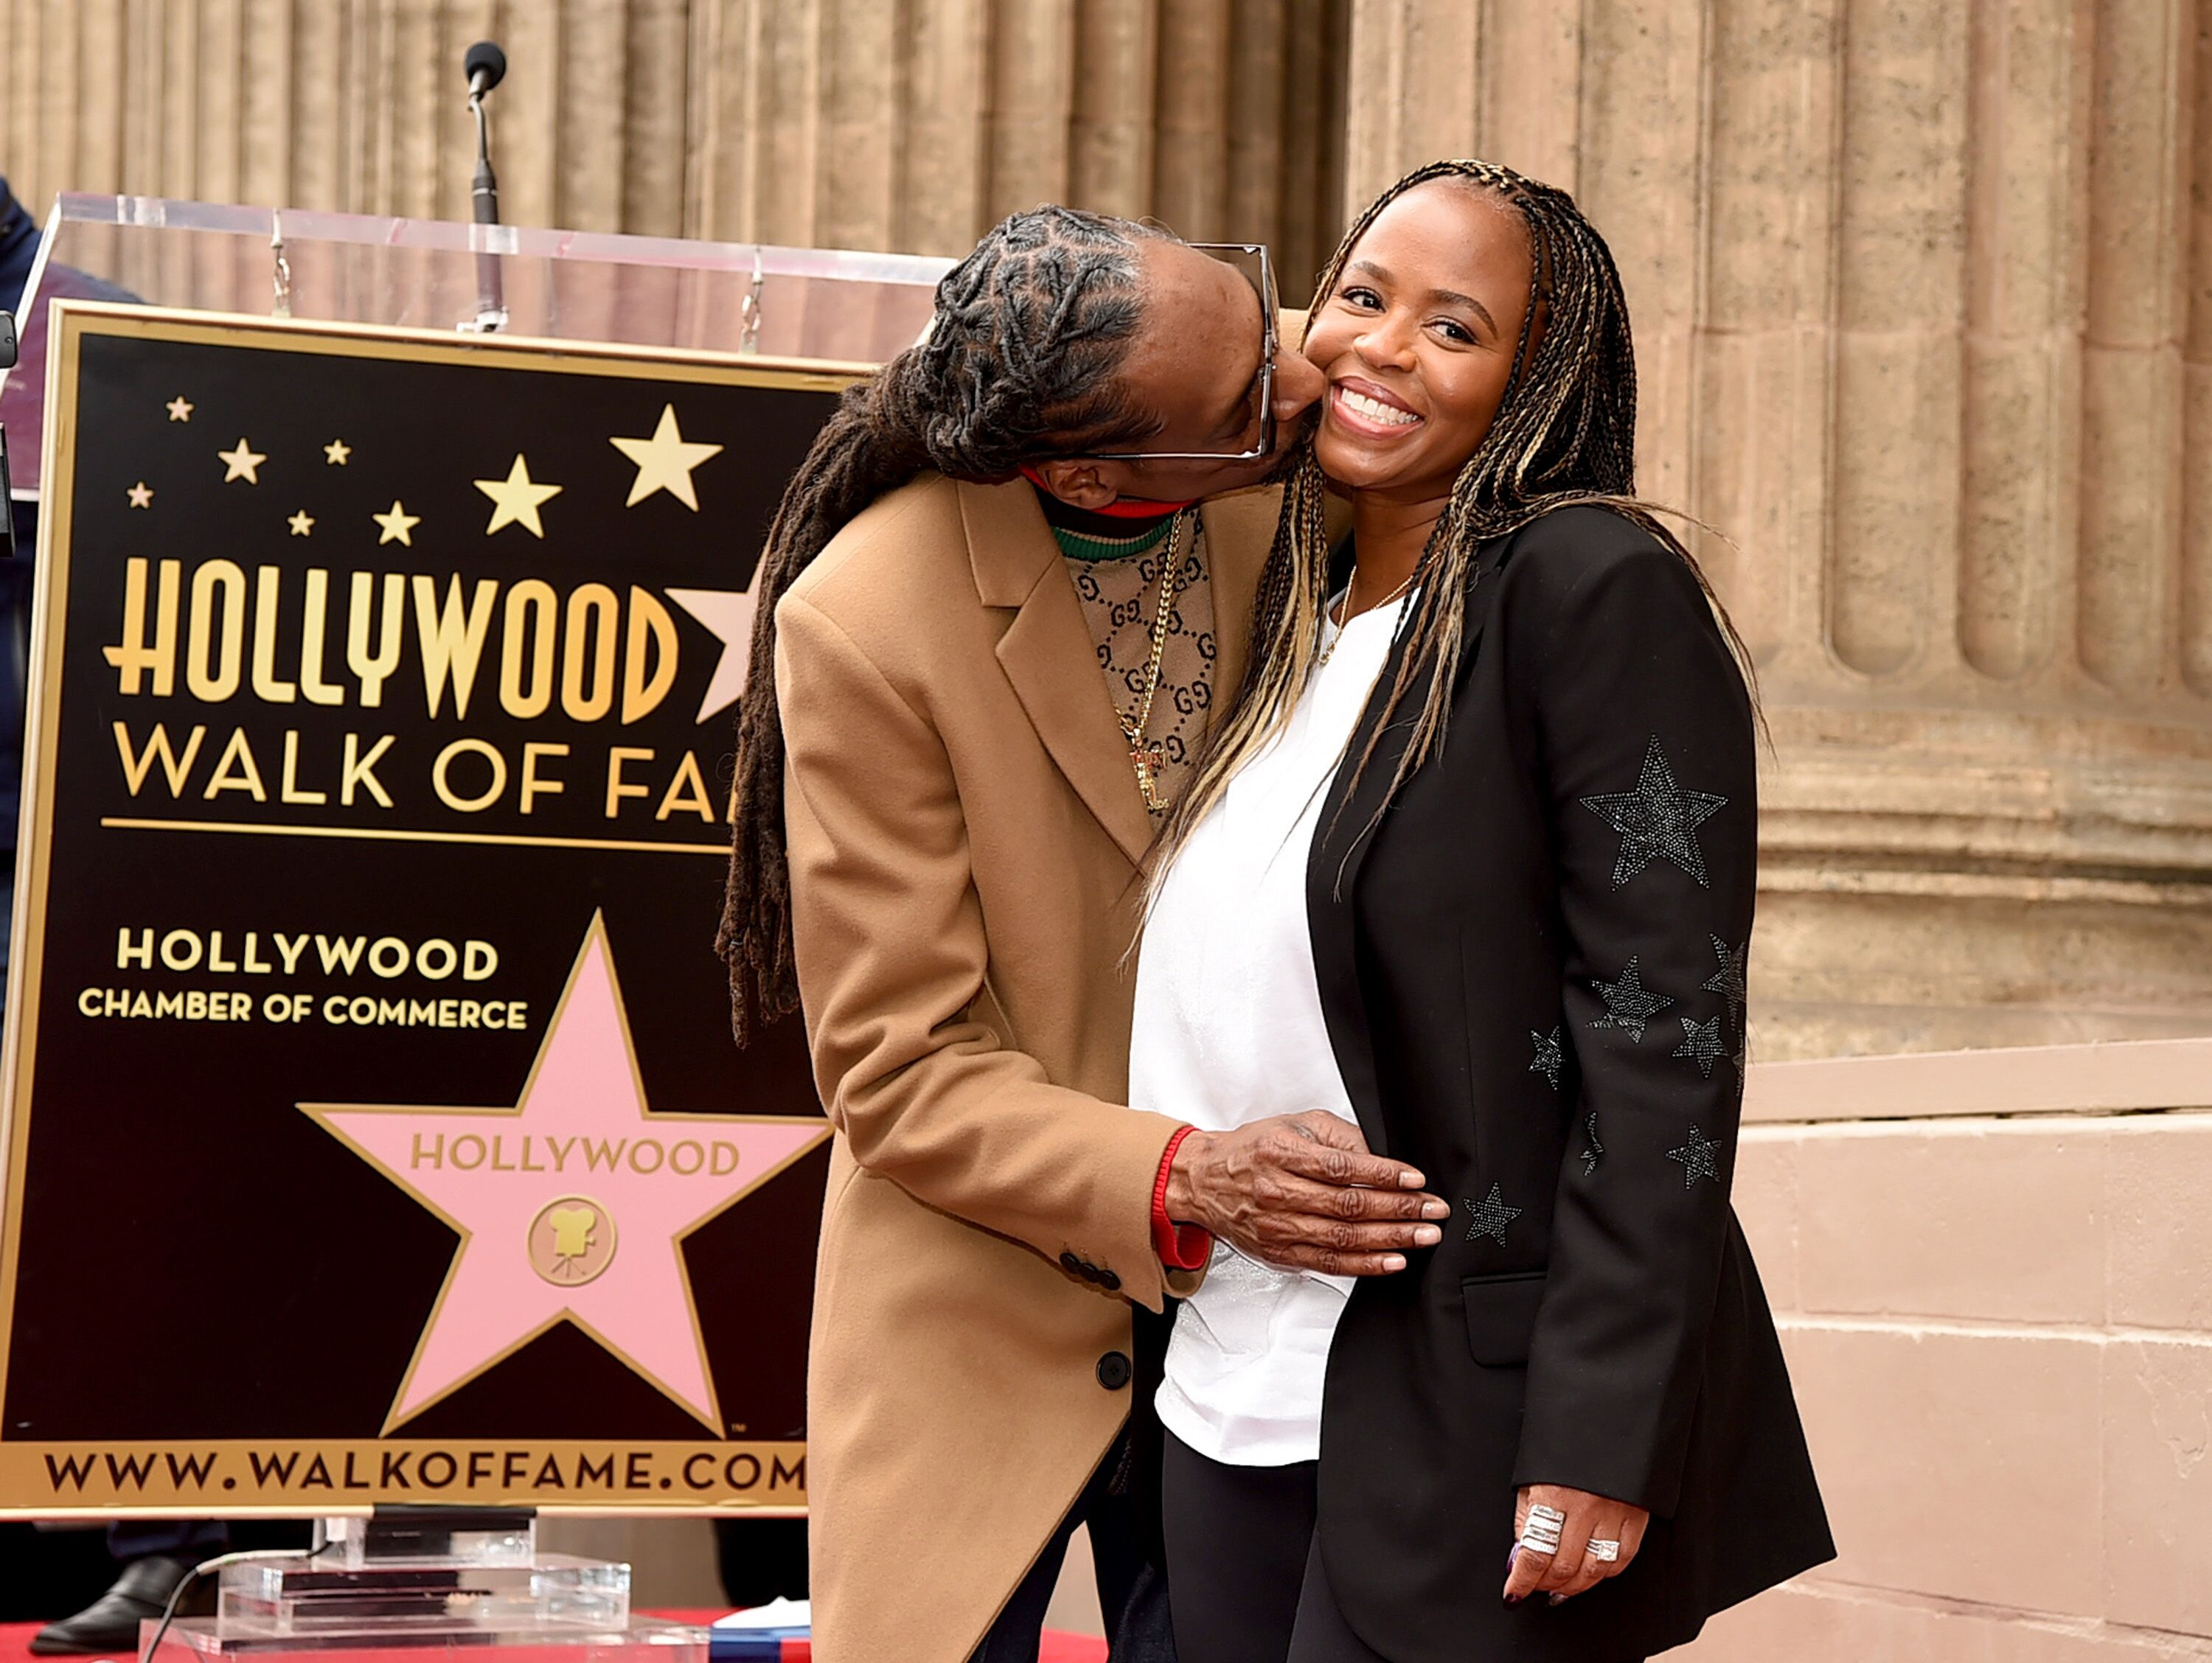 Snoop Dogg and Shante Broadus on The Hollywood Walk Of Fame on November 19, 2018/ Source: Getty Images